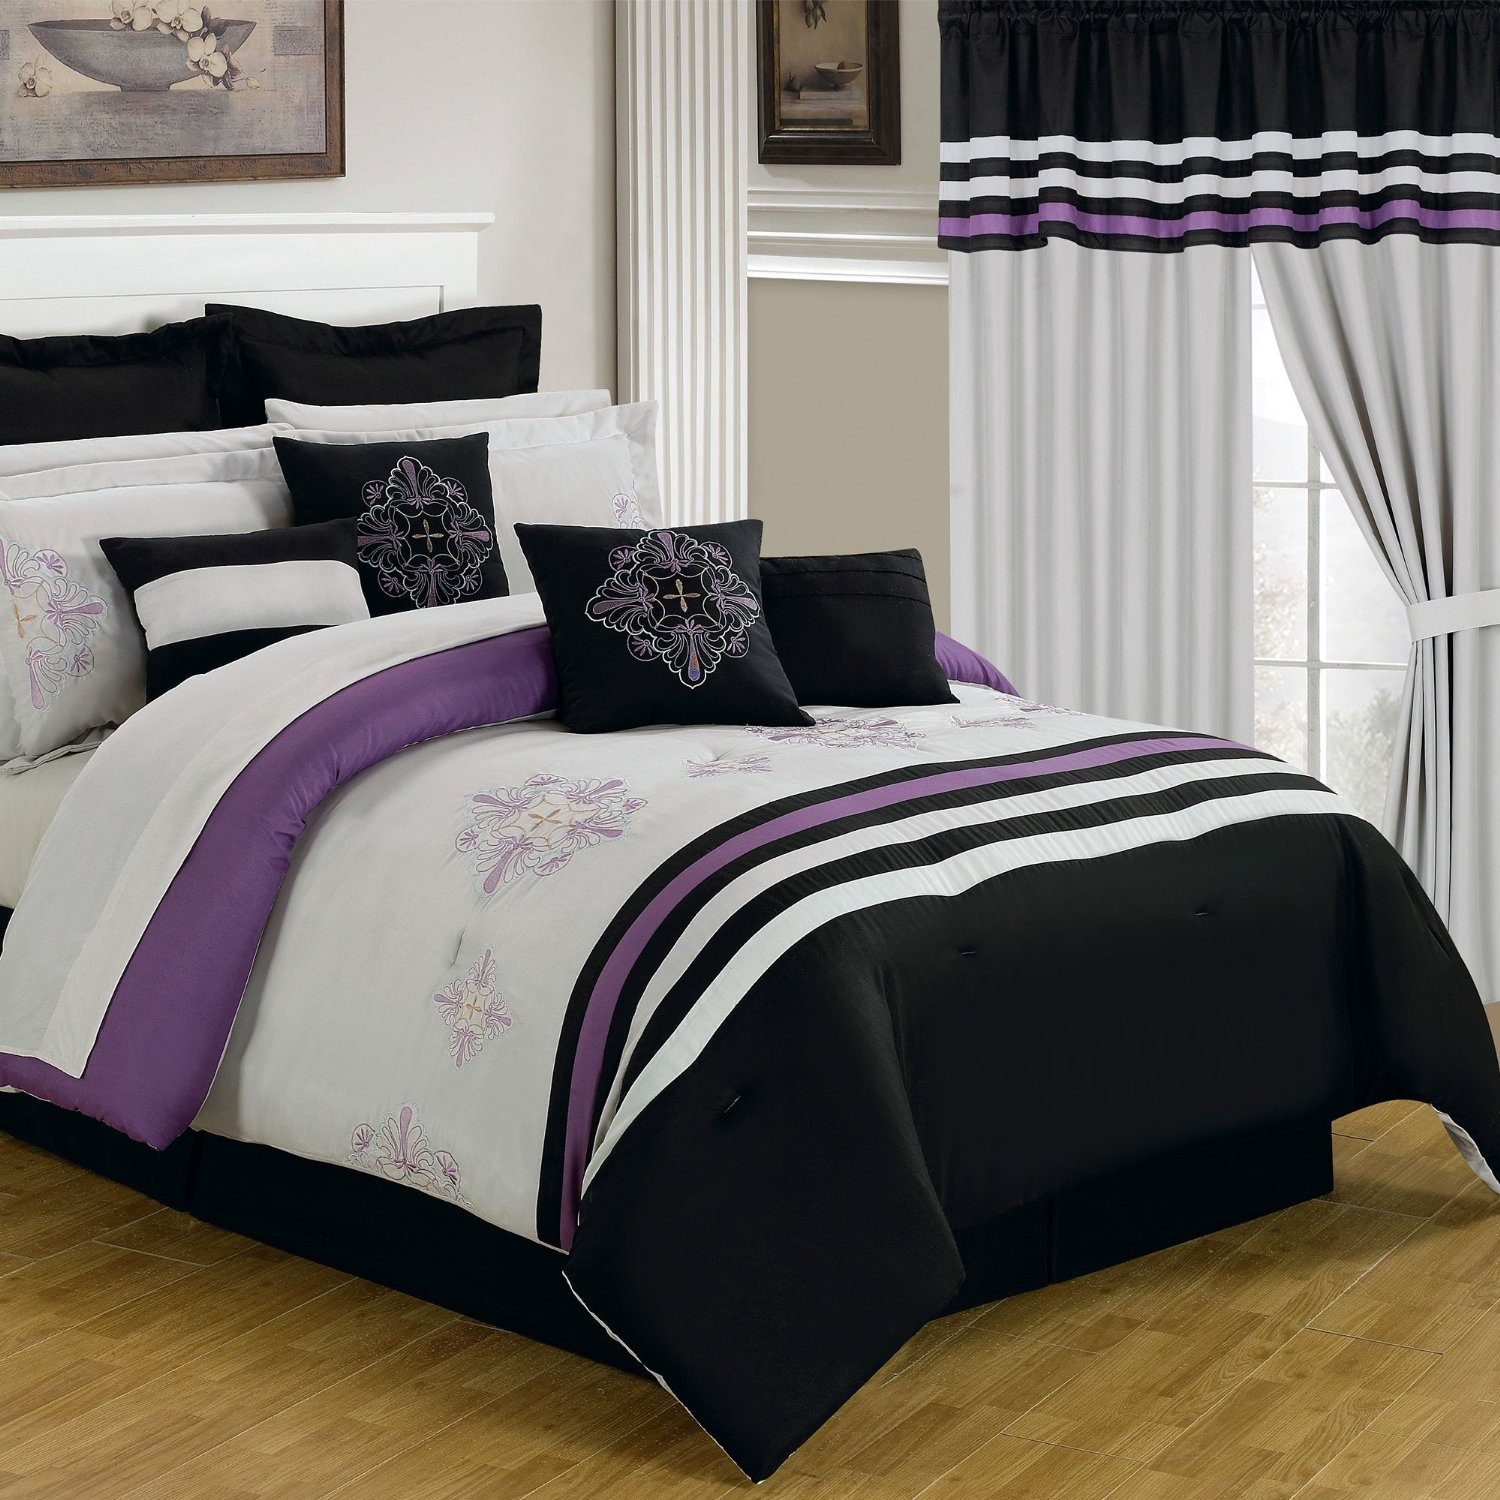 fullxfull duvet bedding tribal set black king twin white il bed queen cover and products